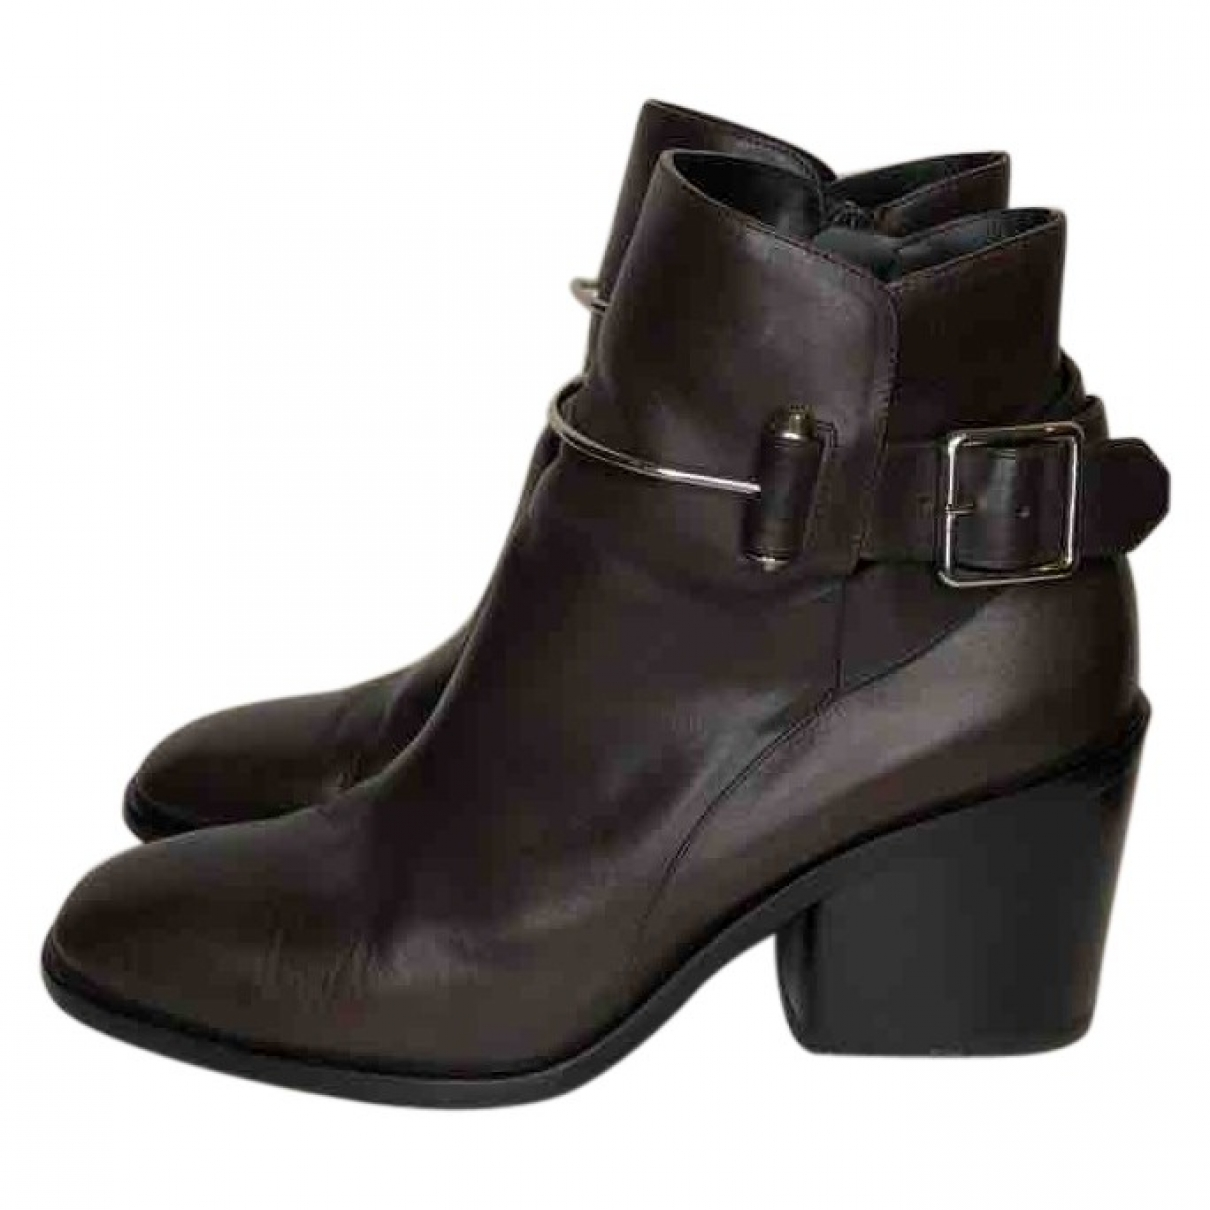 Balenciaga \N Brown Leather Ankle boots for Women 40 EU